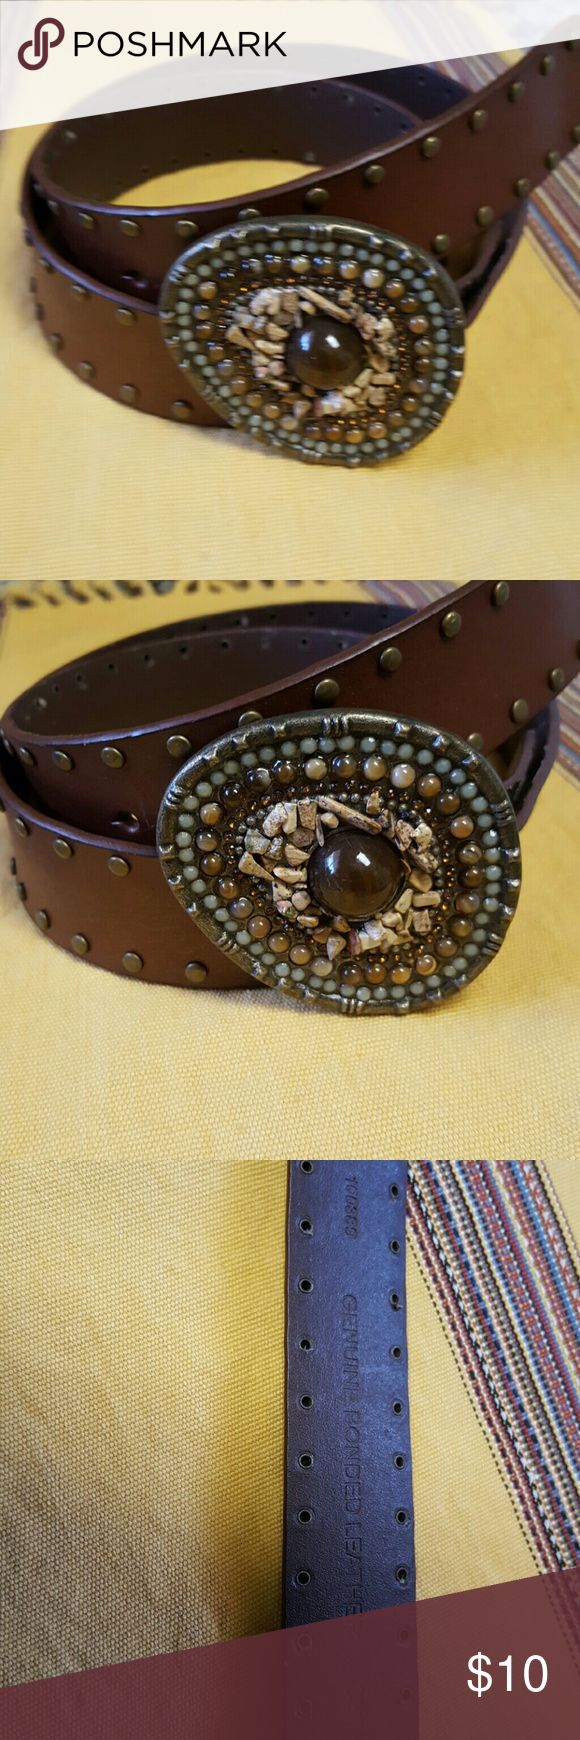 Western Embellished Leather Belt Retro western-style belt in genuine leather with bronze grommets! Big chunky belt buckle with real and faux stones. Fits adjustable 34 to 38 in. Never worn, looks like brand new! Accessories Belts